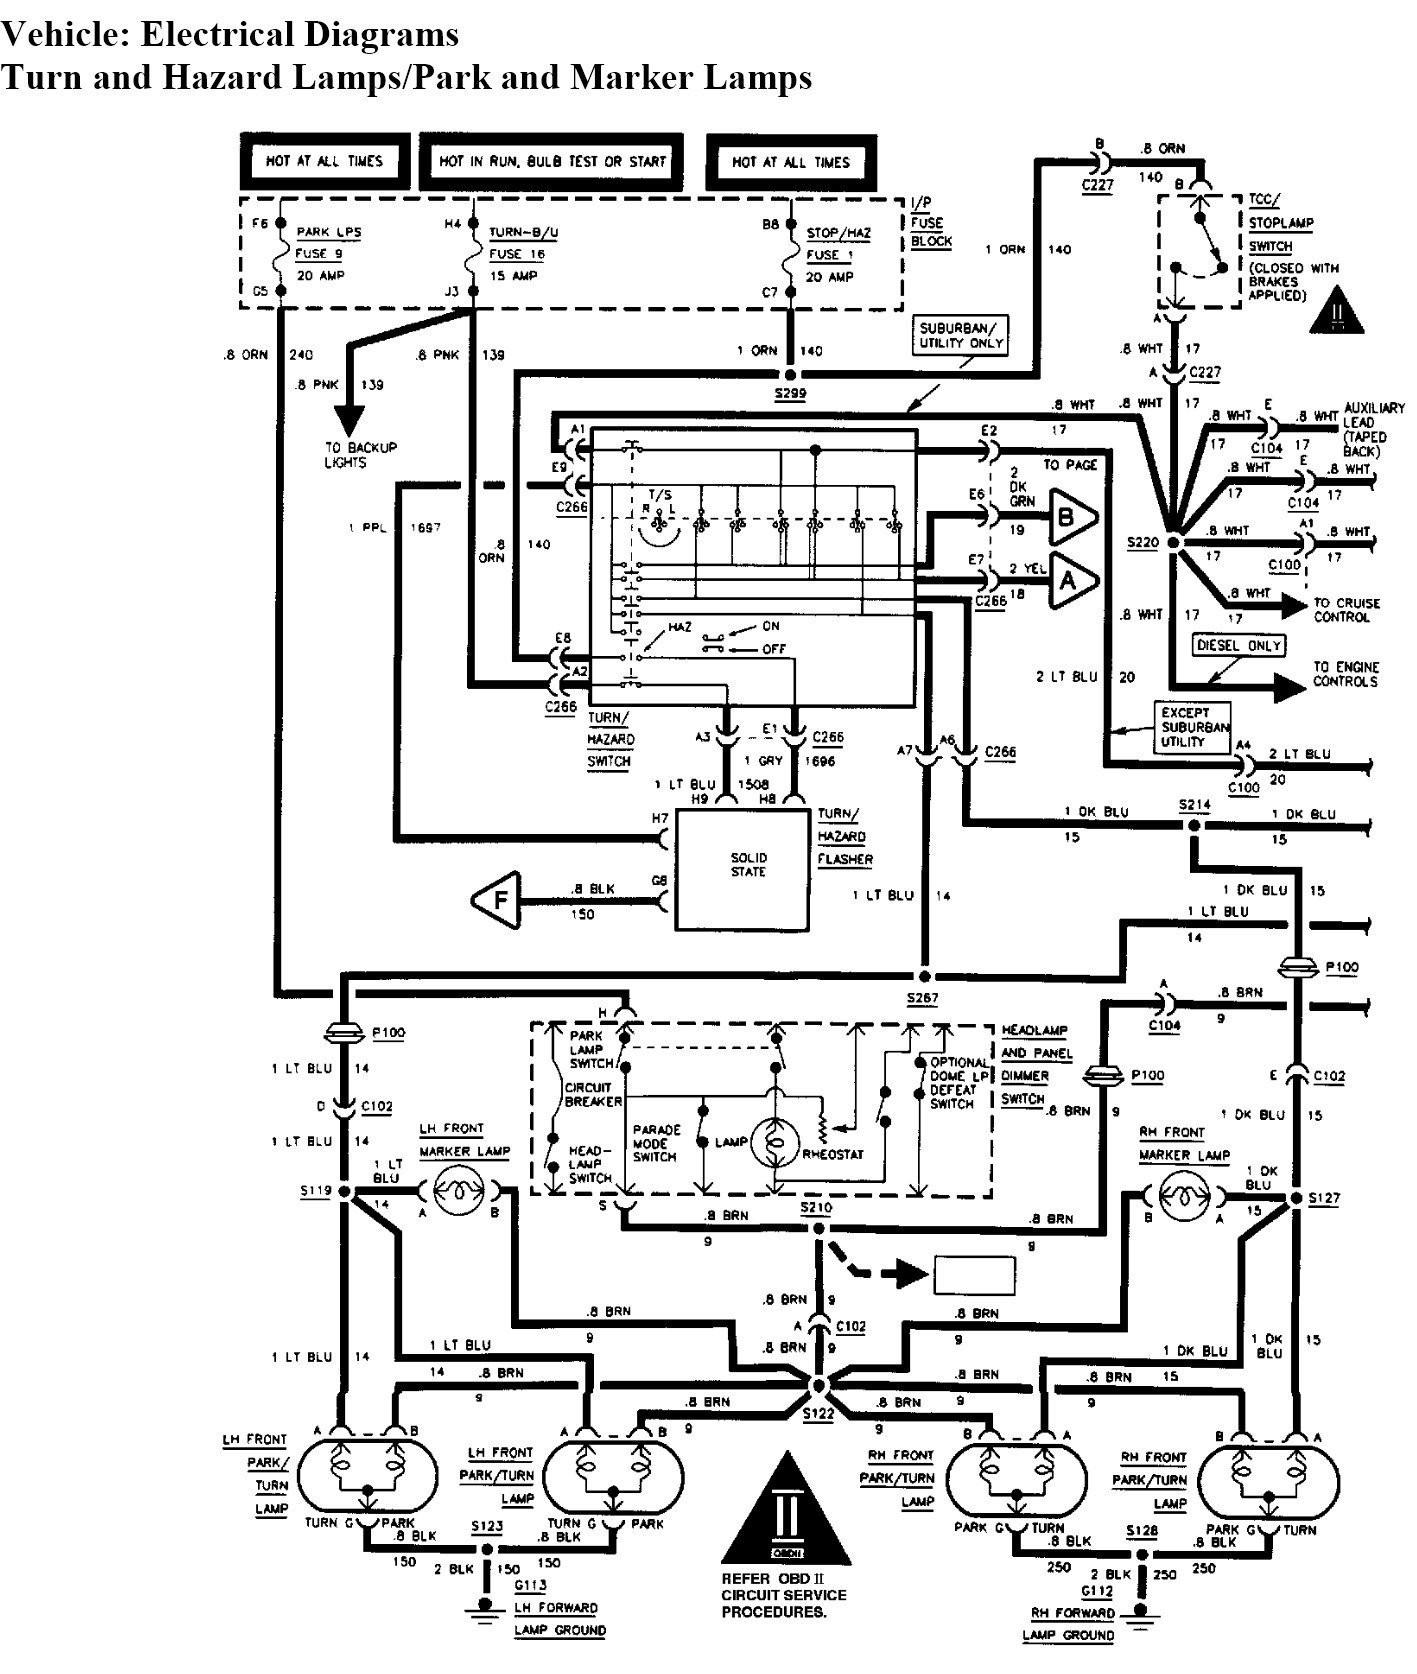 Jeep Grand Cherokee Exhaust System Diagram Schematic Diagrams 2002 Jeep  Grand Cherokee Engine Diagram 2000 Jeep Grand Cherokee Laredo Parts Diagram